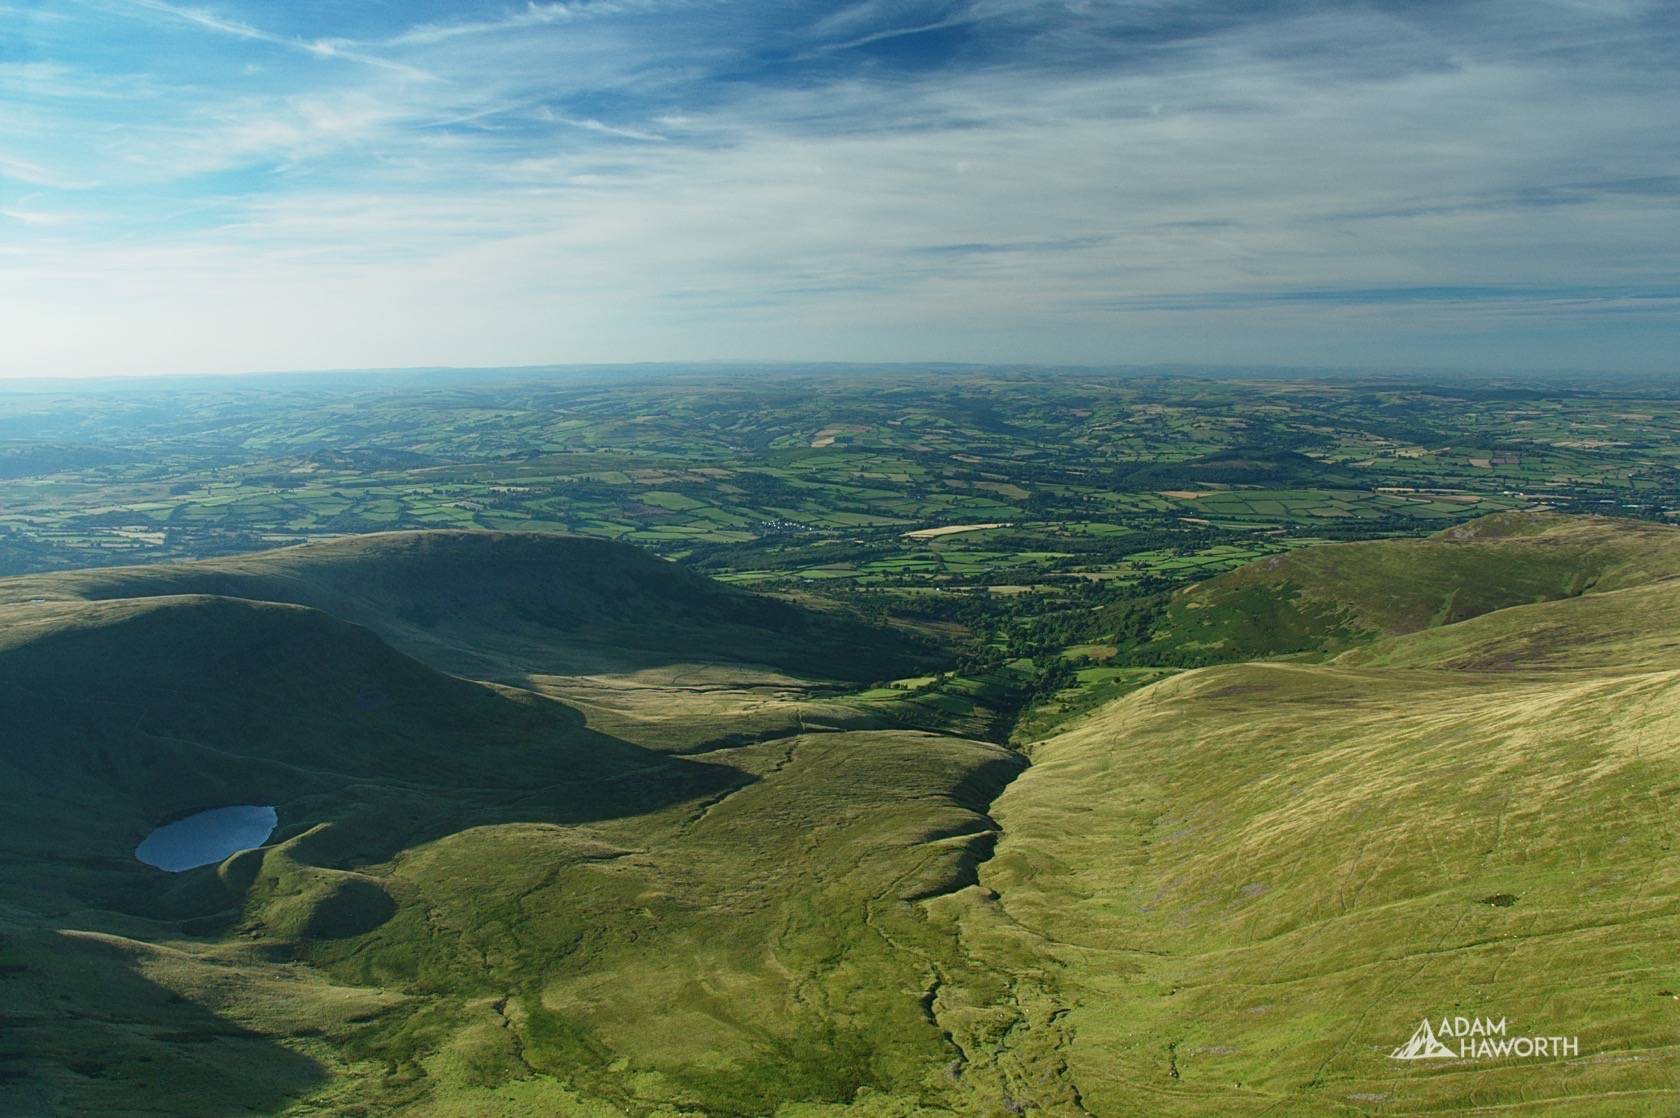 A summers day in the Brecon Beacons – Corn Du & Pen y Fan Circular Walk